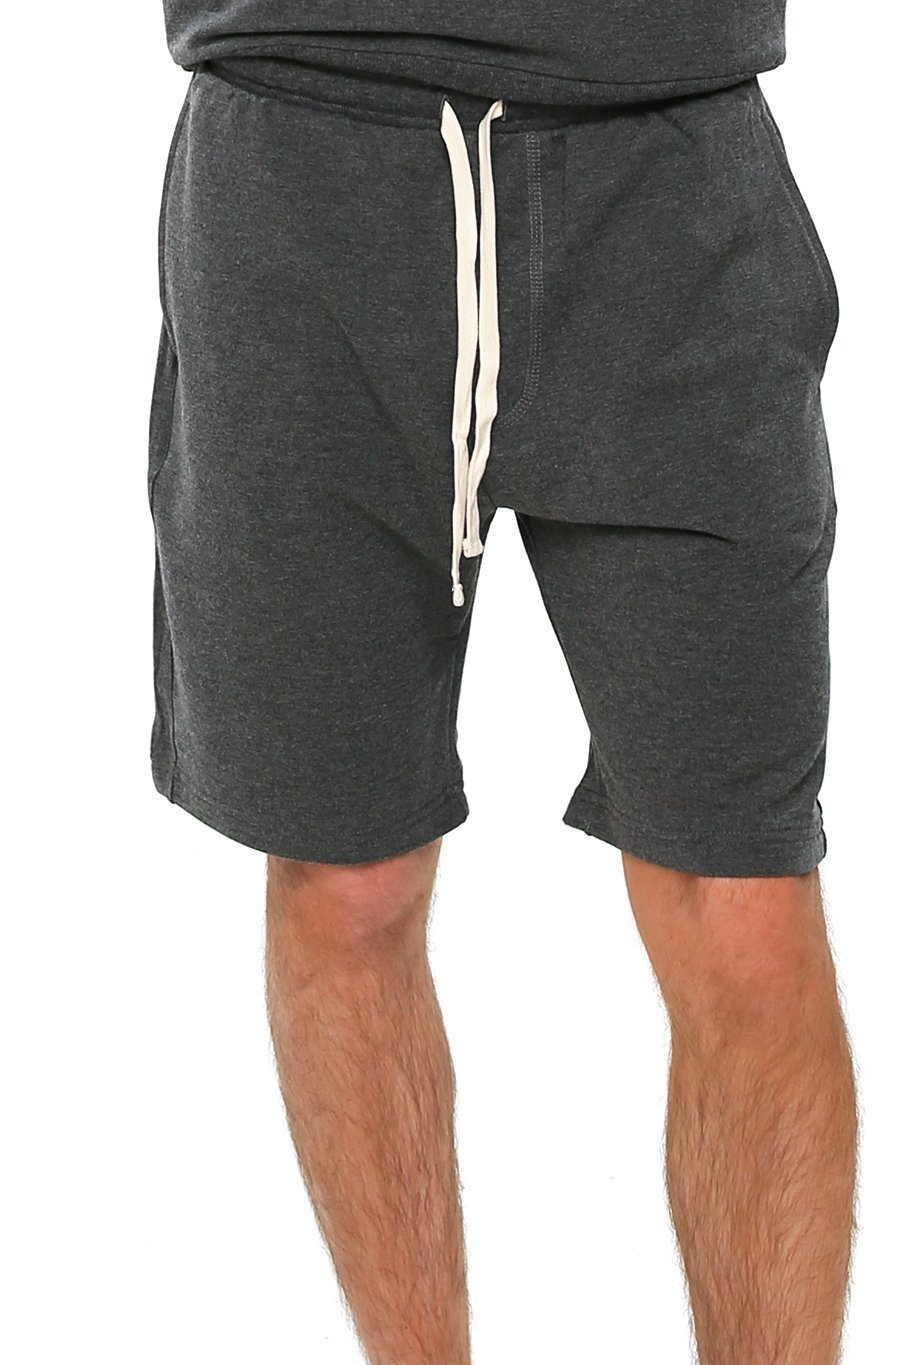 San Diego Fleece Shorts - Charcoal - Shore